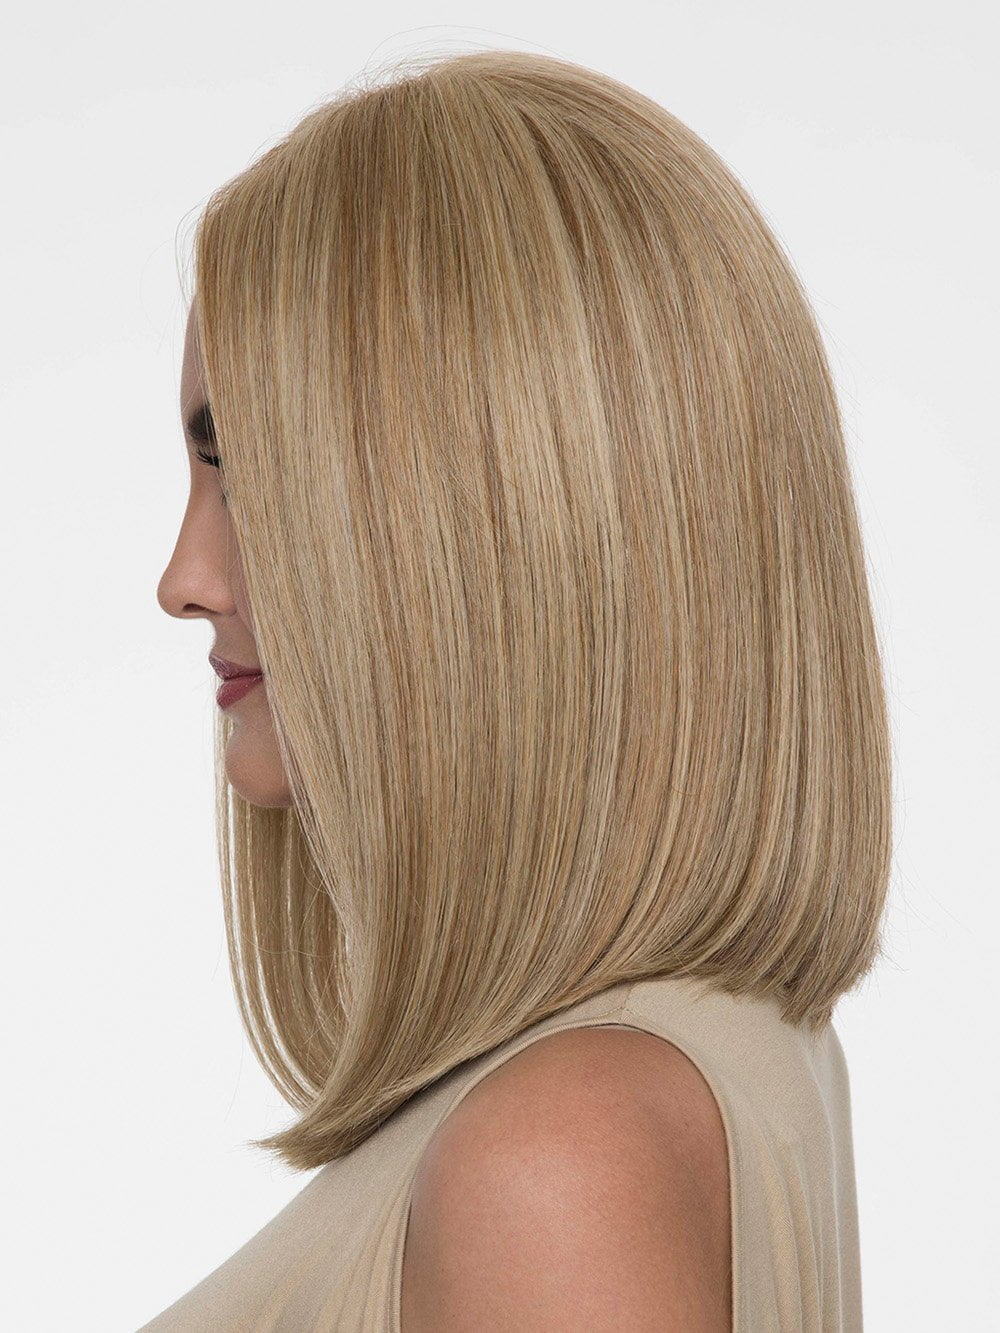 A timeless elegance that abounds with this classic, shoulder-length style